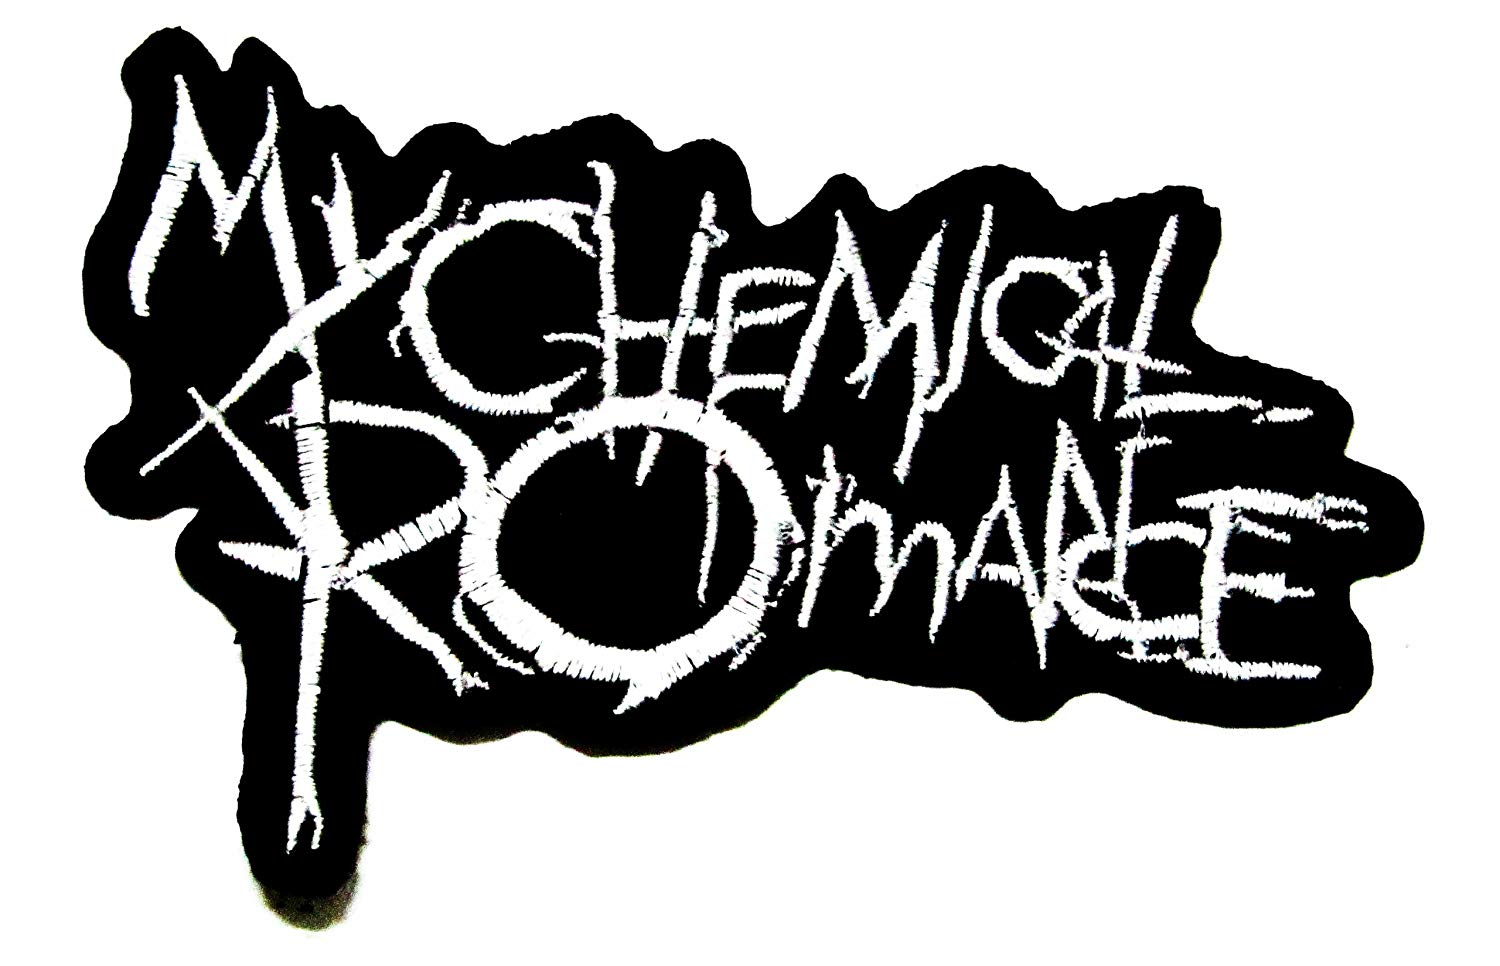 All I Want For Chrisas Is You на столько сильно и фанатично*^^* My Chemical Romance